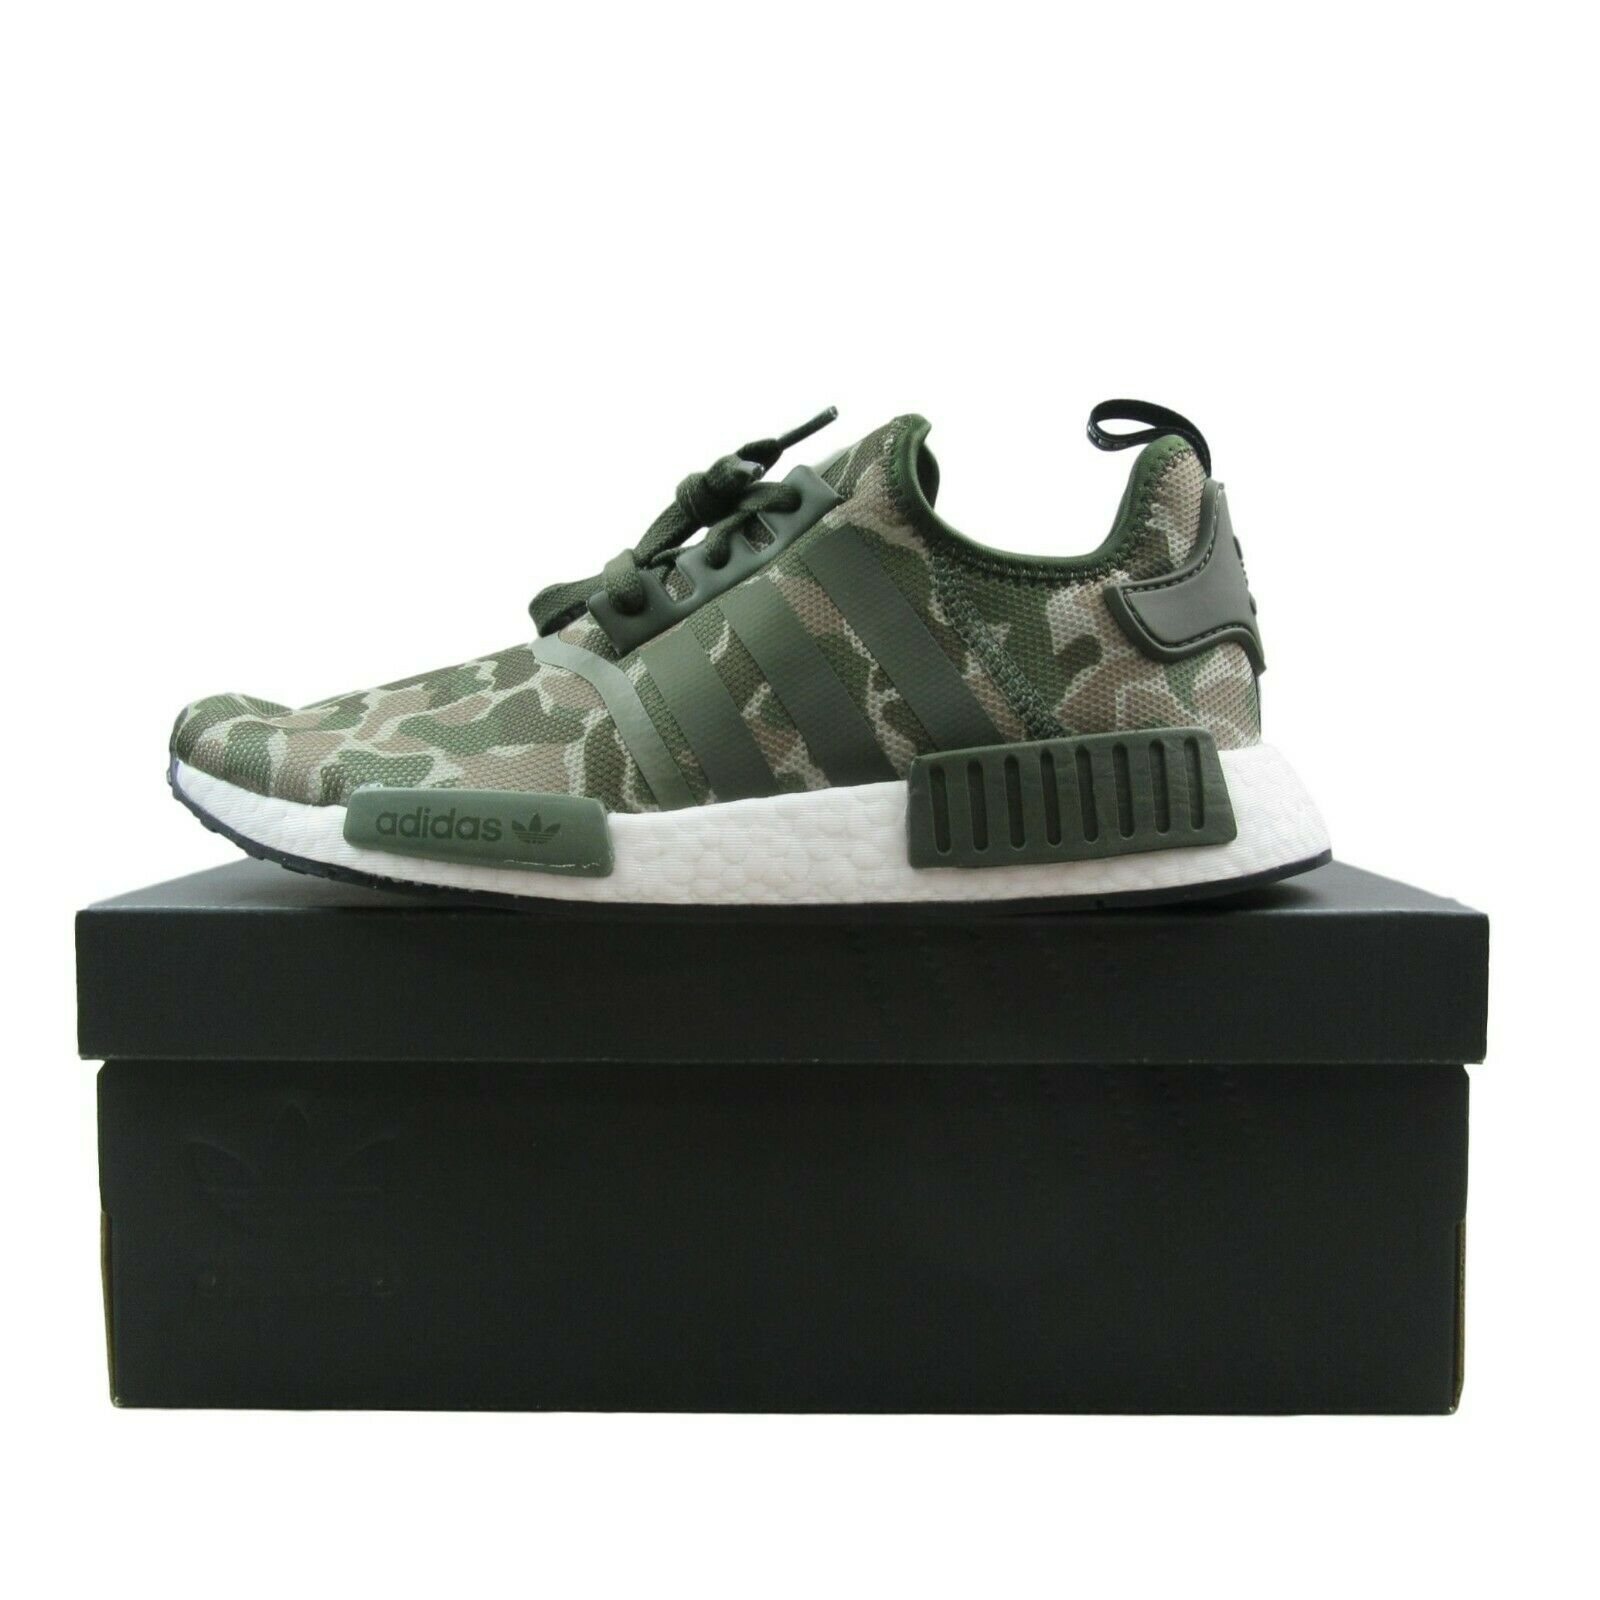 ca0809a2523f3 Adidas NMD R1 Duck Camo Running Shoes Size 9.5 Sesame Base Green D96617